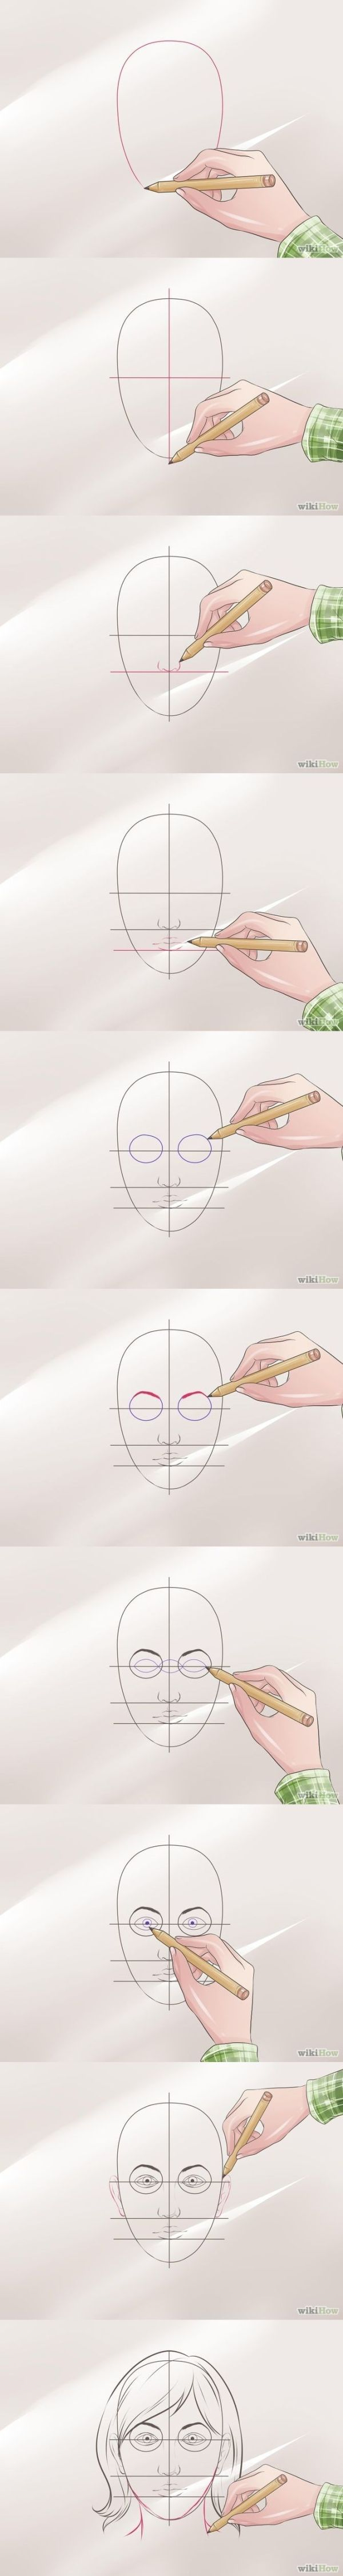 Comment dessiner un visage Étape par étape tutoriel Wikihow #draw #FACE #drawing #how par olga